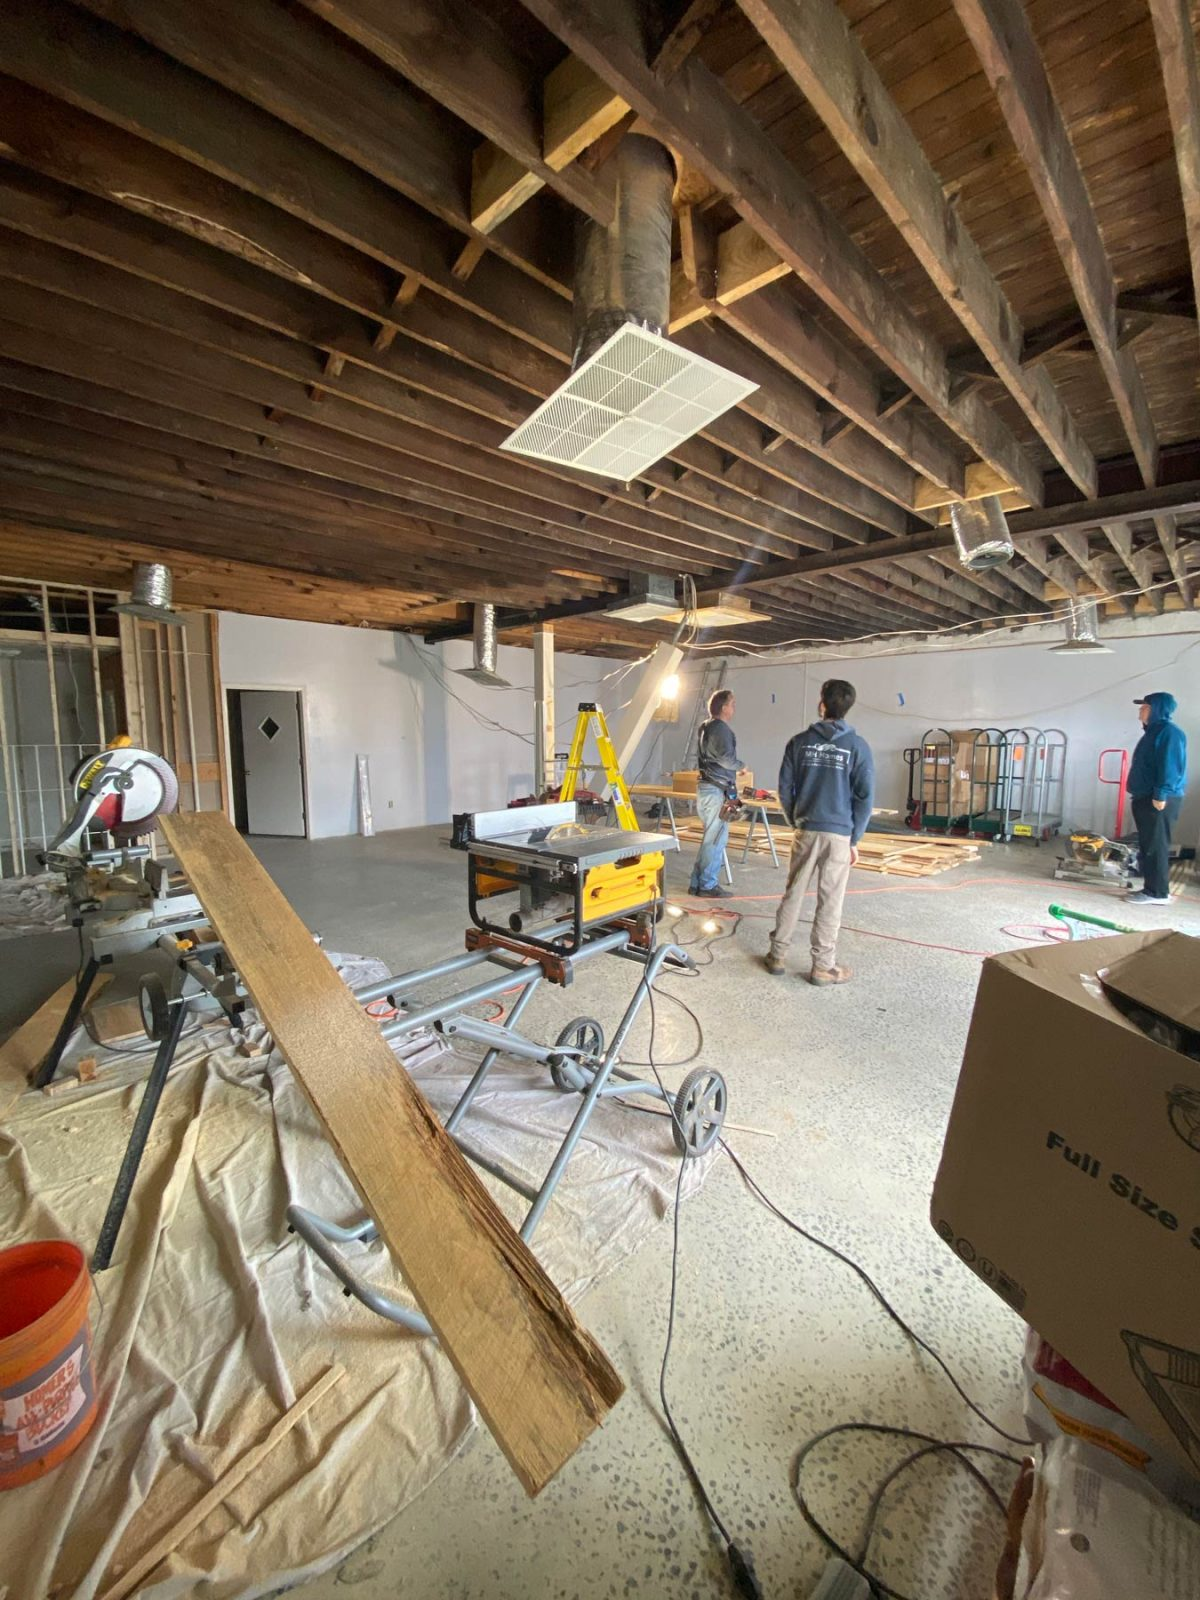 Construction crew working on interior remodel